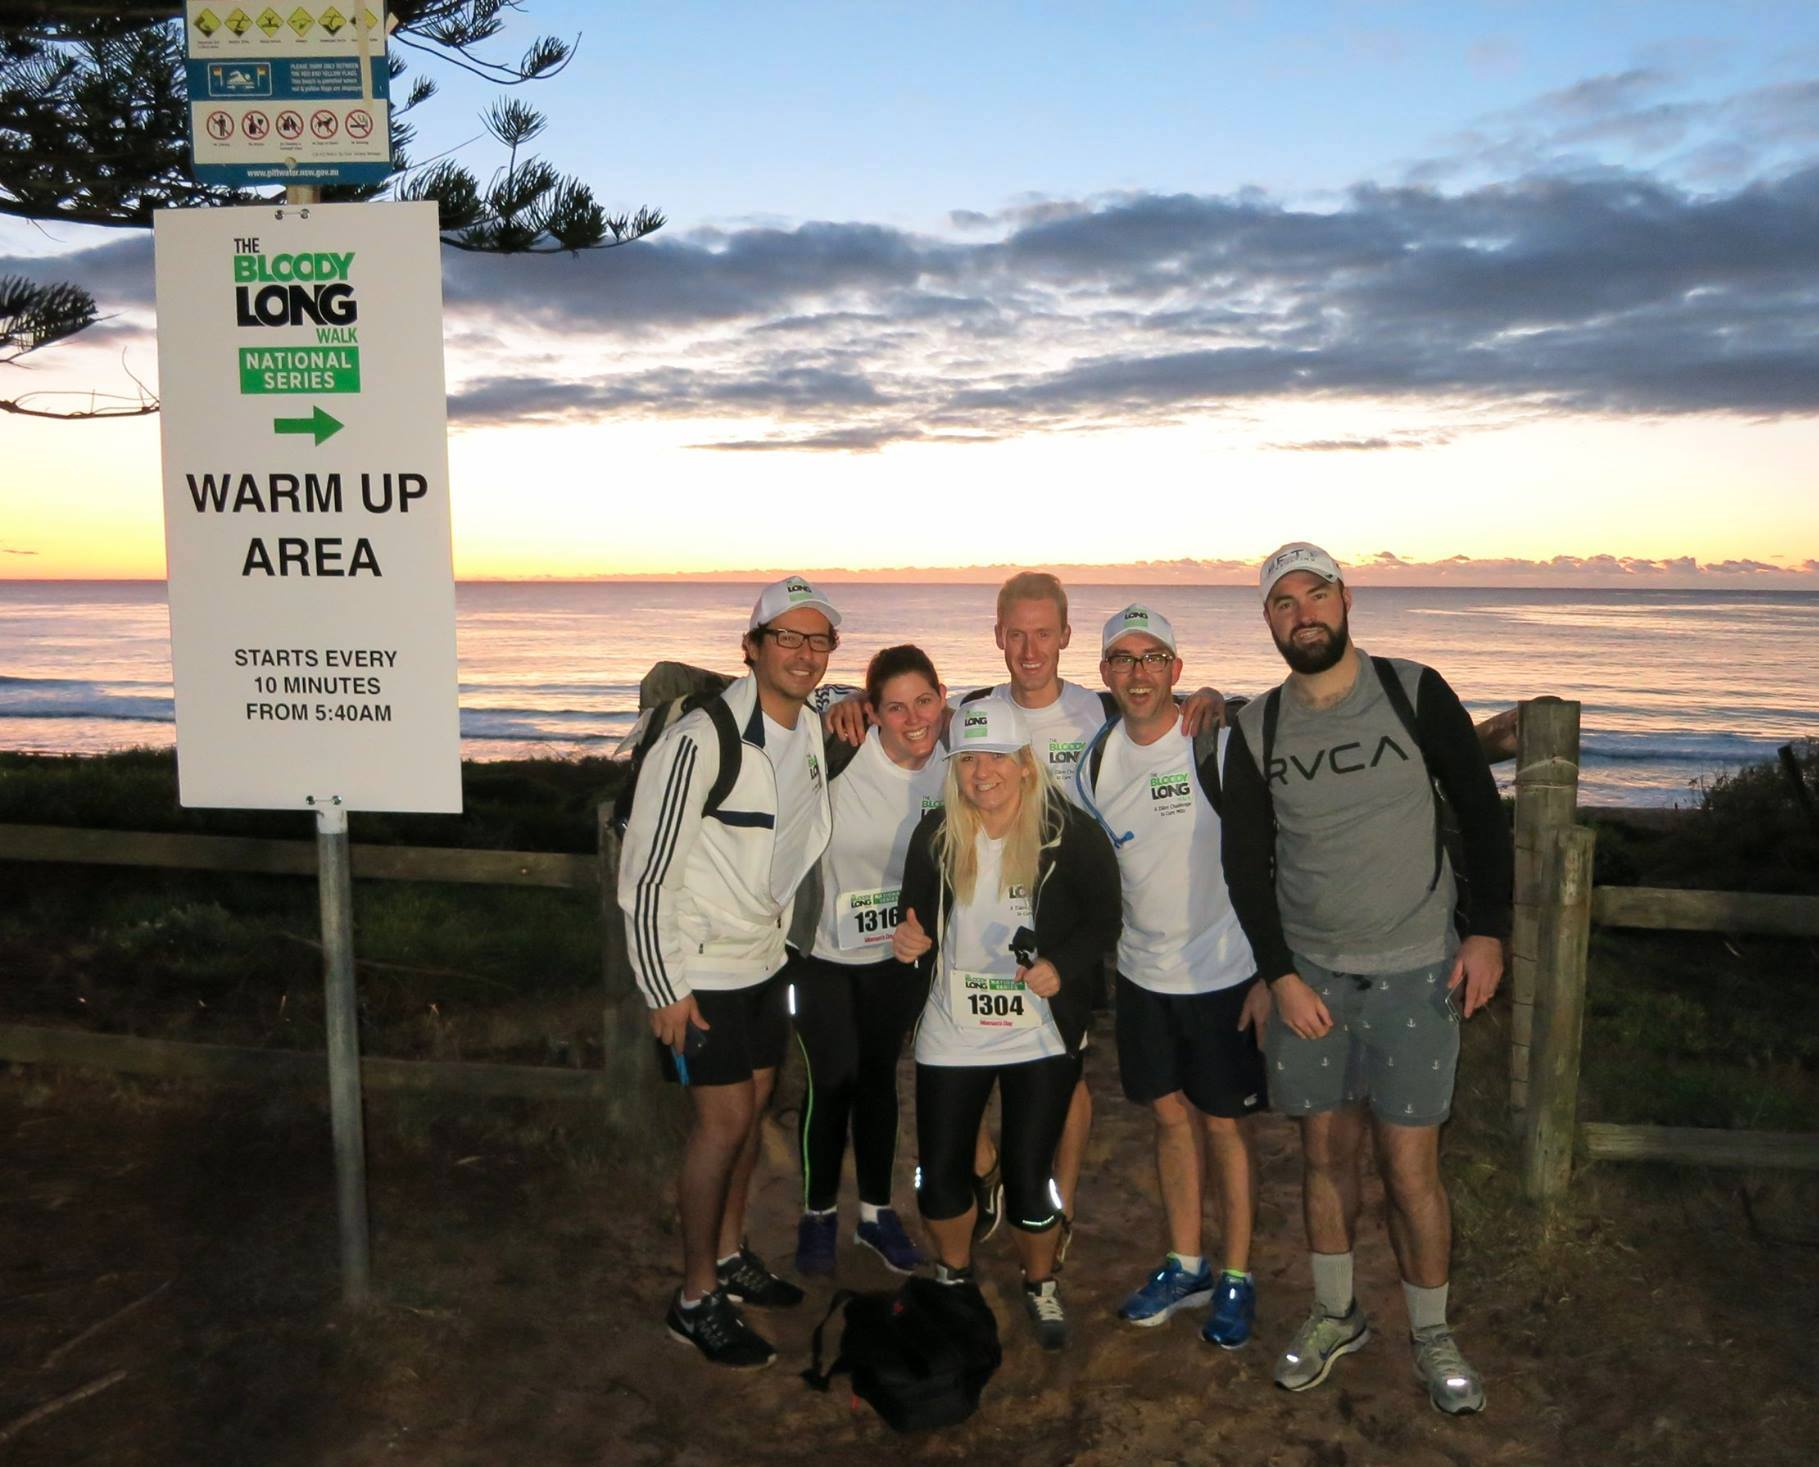 Sunrise for the AMDF 35km walk